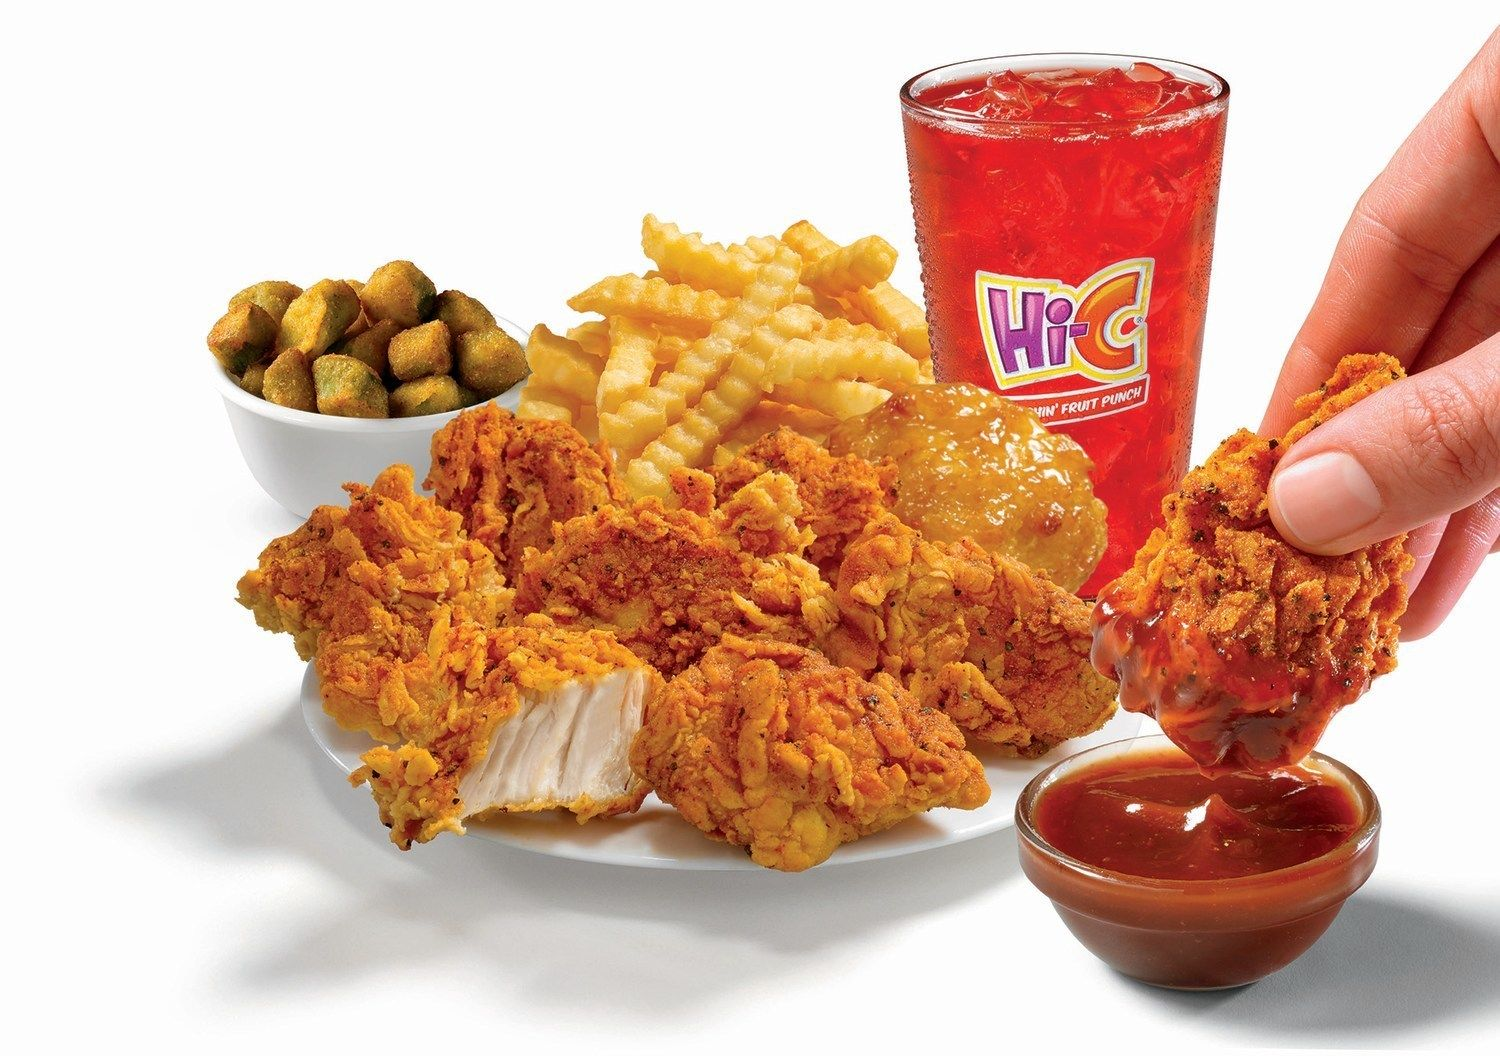 Chicken MegaBites Return to Church's Chicken with New Smoky BBQ Flavor